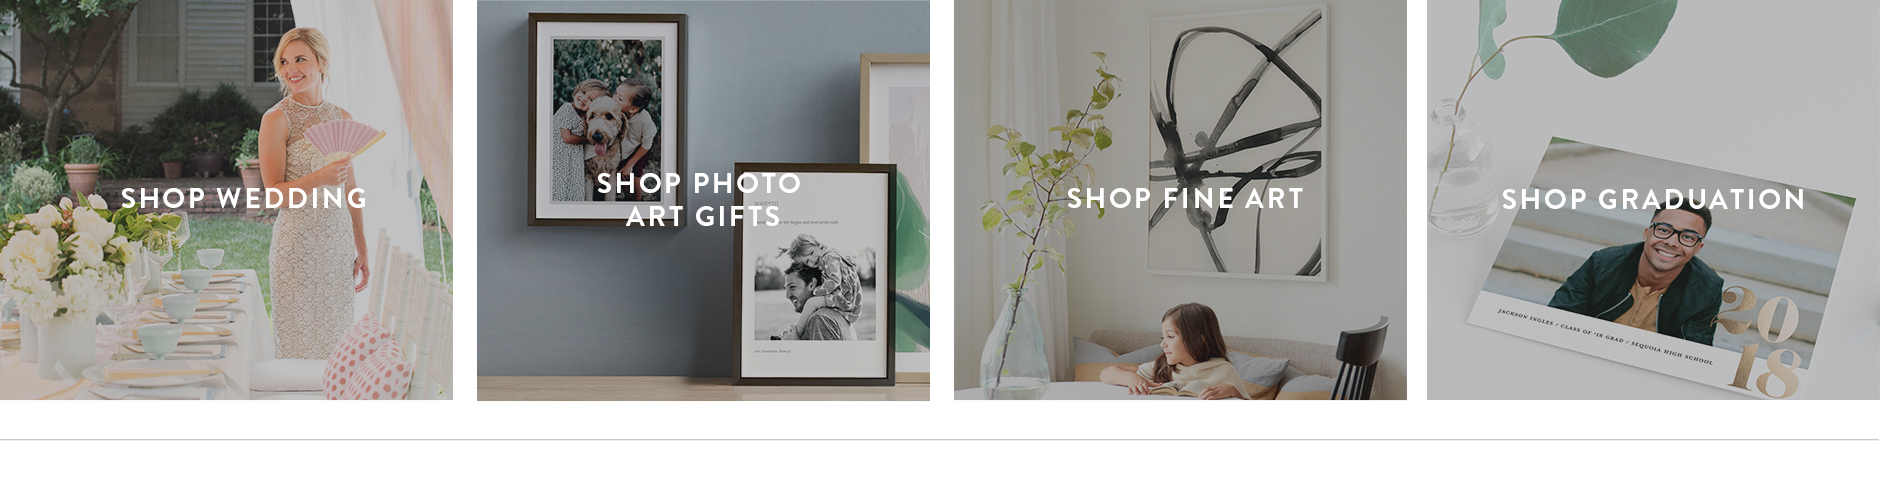 Shop Minted Art